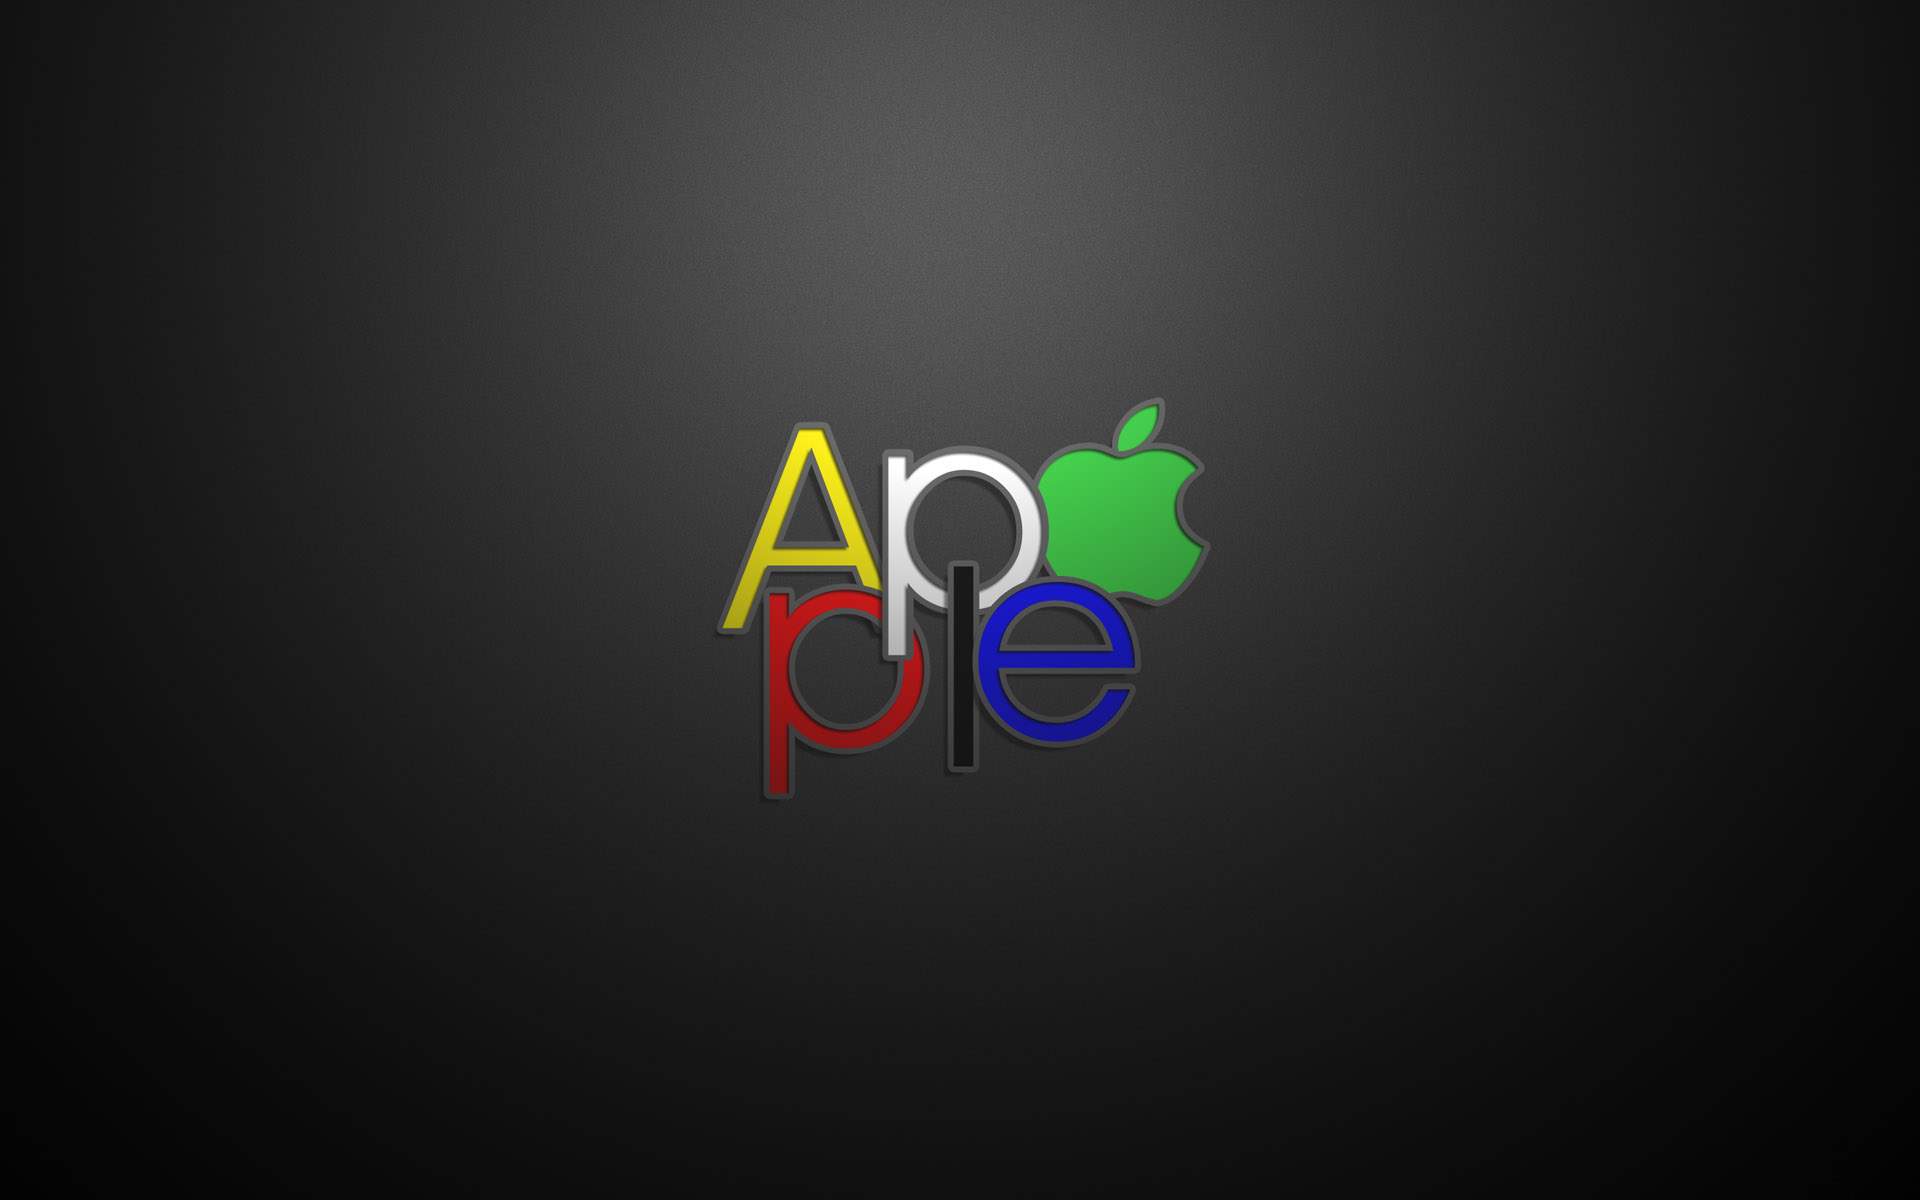 HD Apple wallpaper 17085